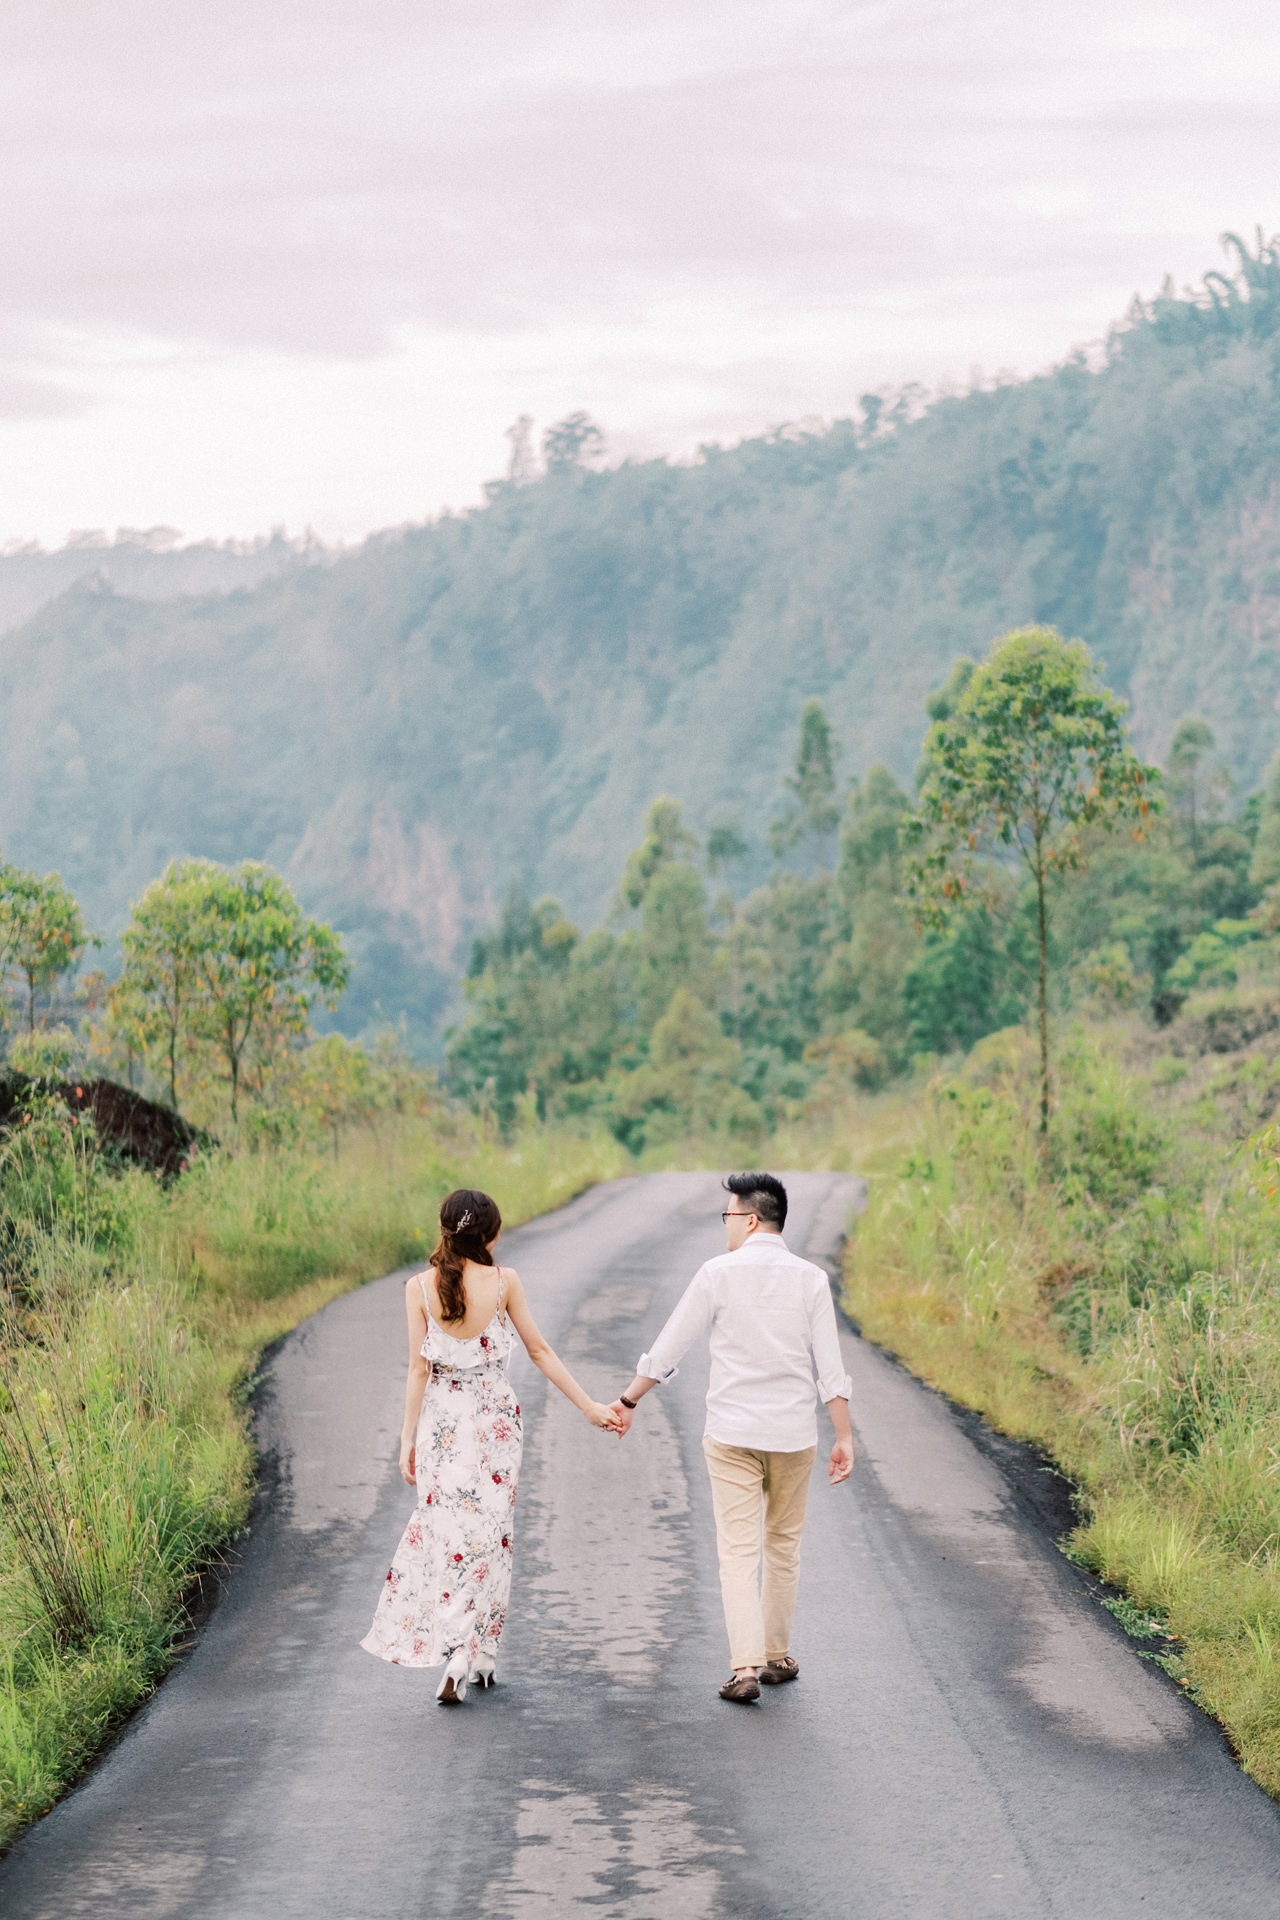 S&Y: Batur Volcano and Nungnung Waterfall Prewedding - Bali Prewedding Photographer 13